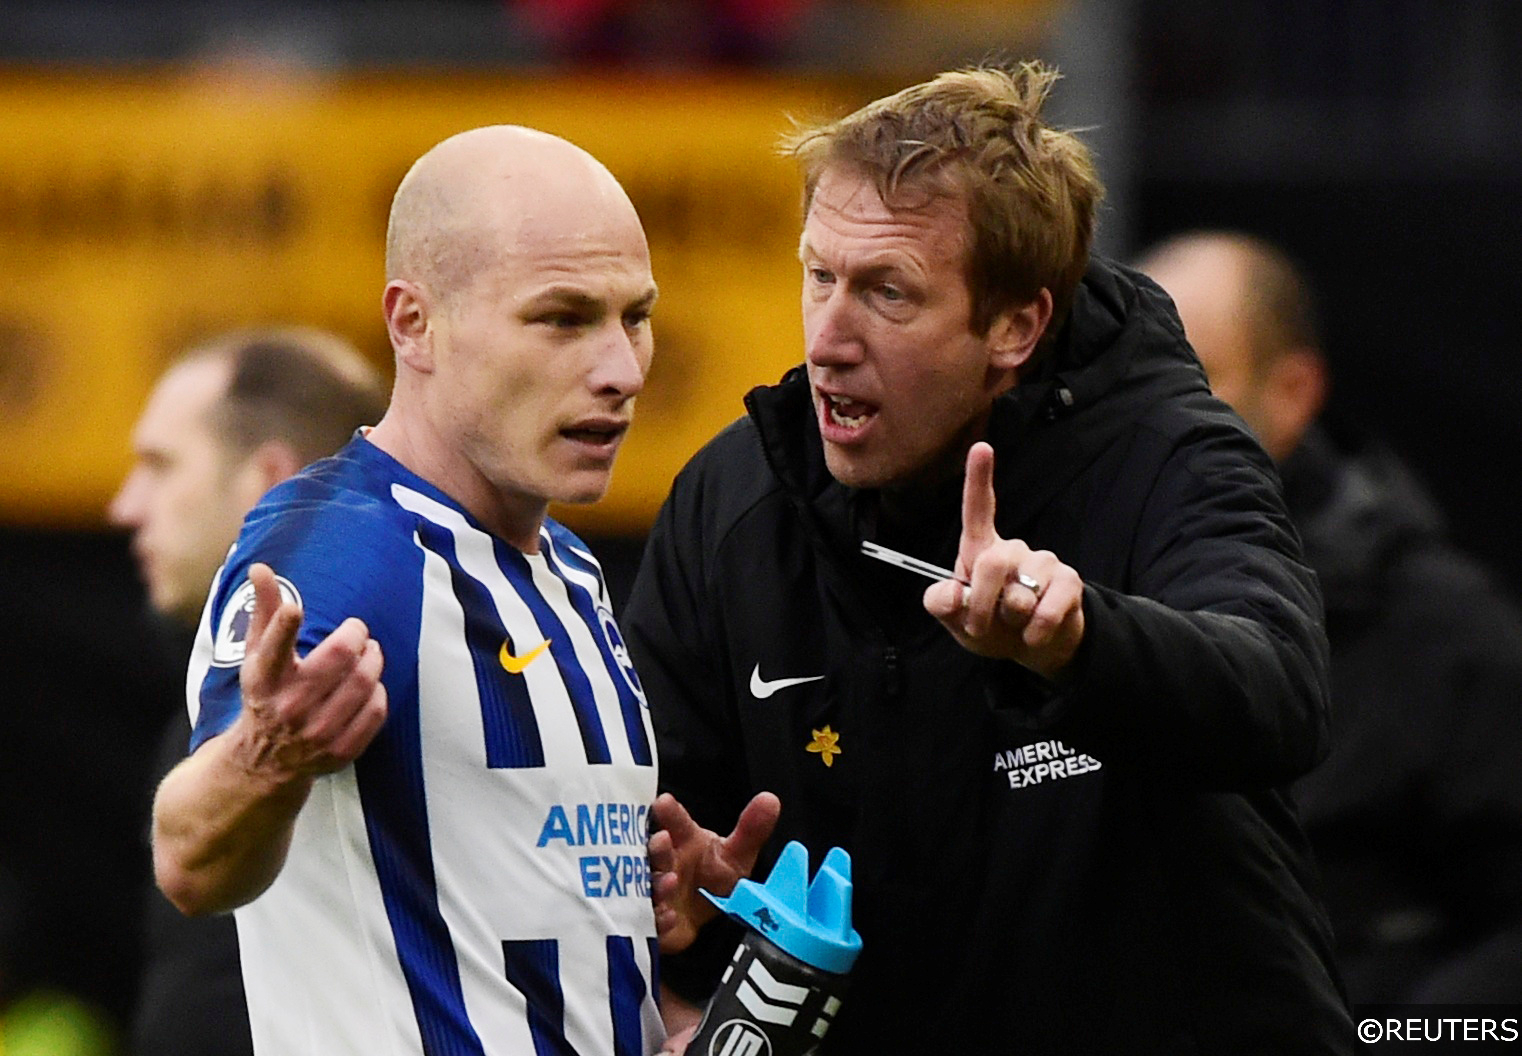 Brighton and Hove Albion manager talks tactics